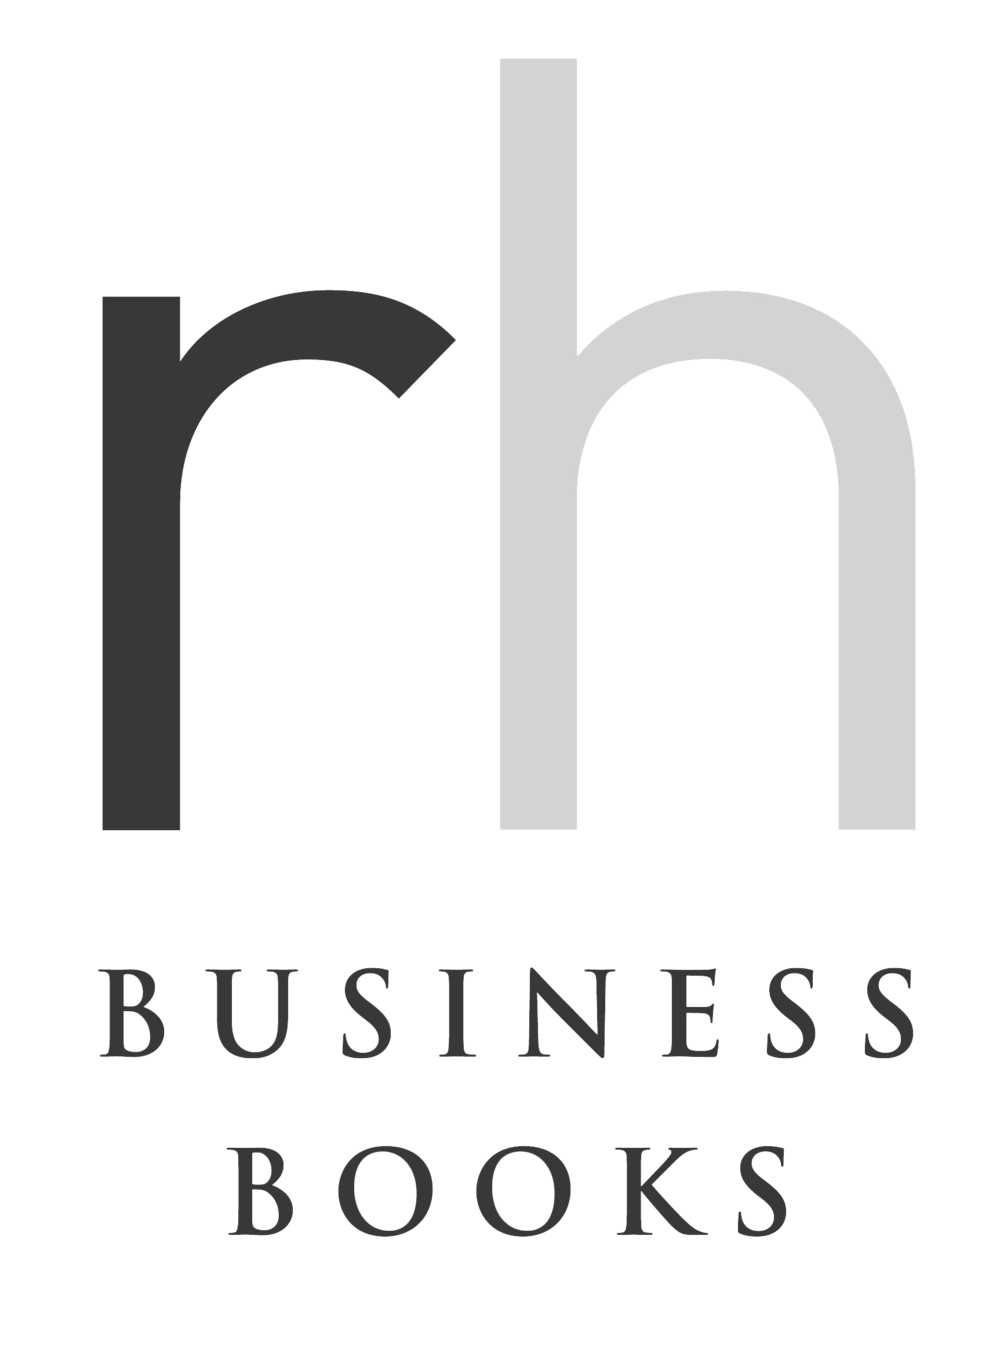 rh_business_books.png